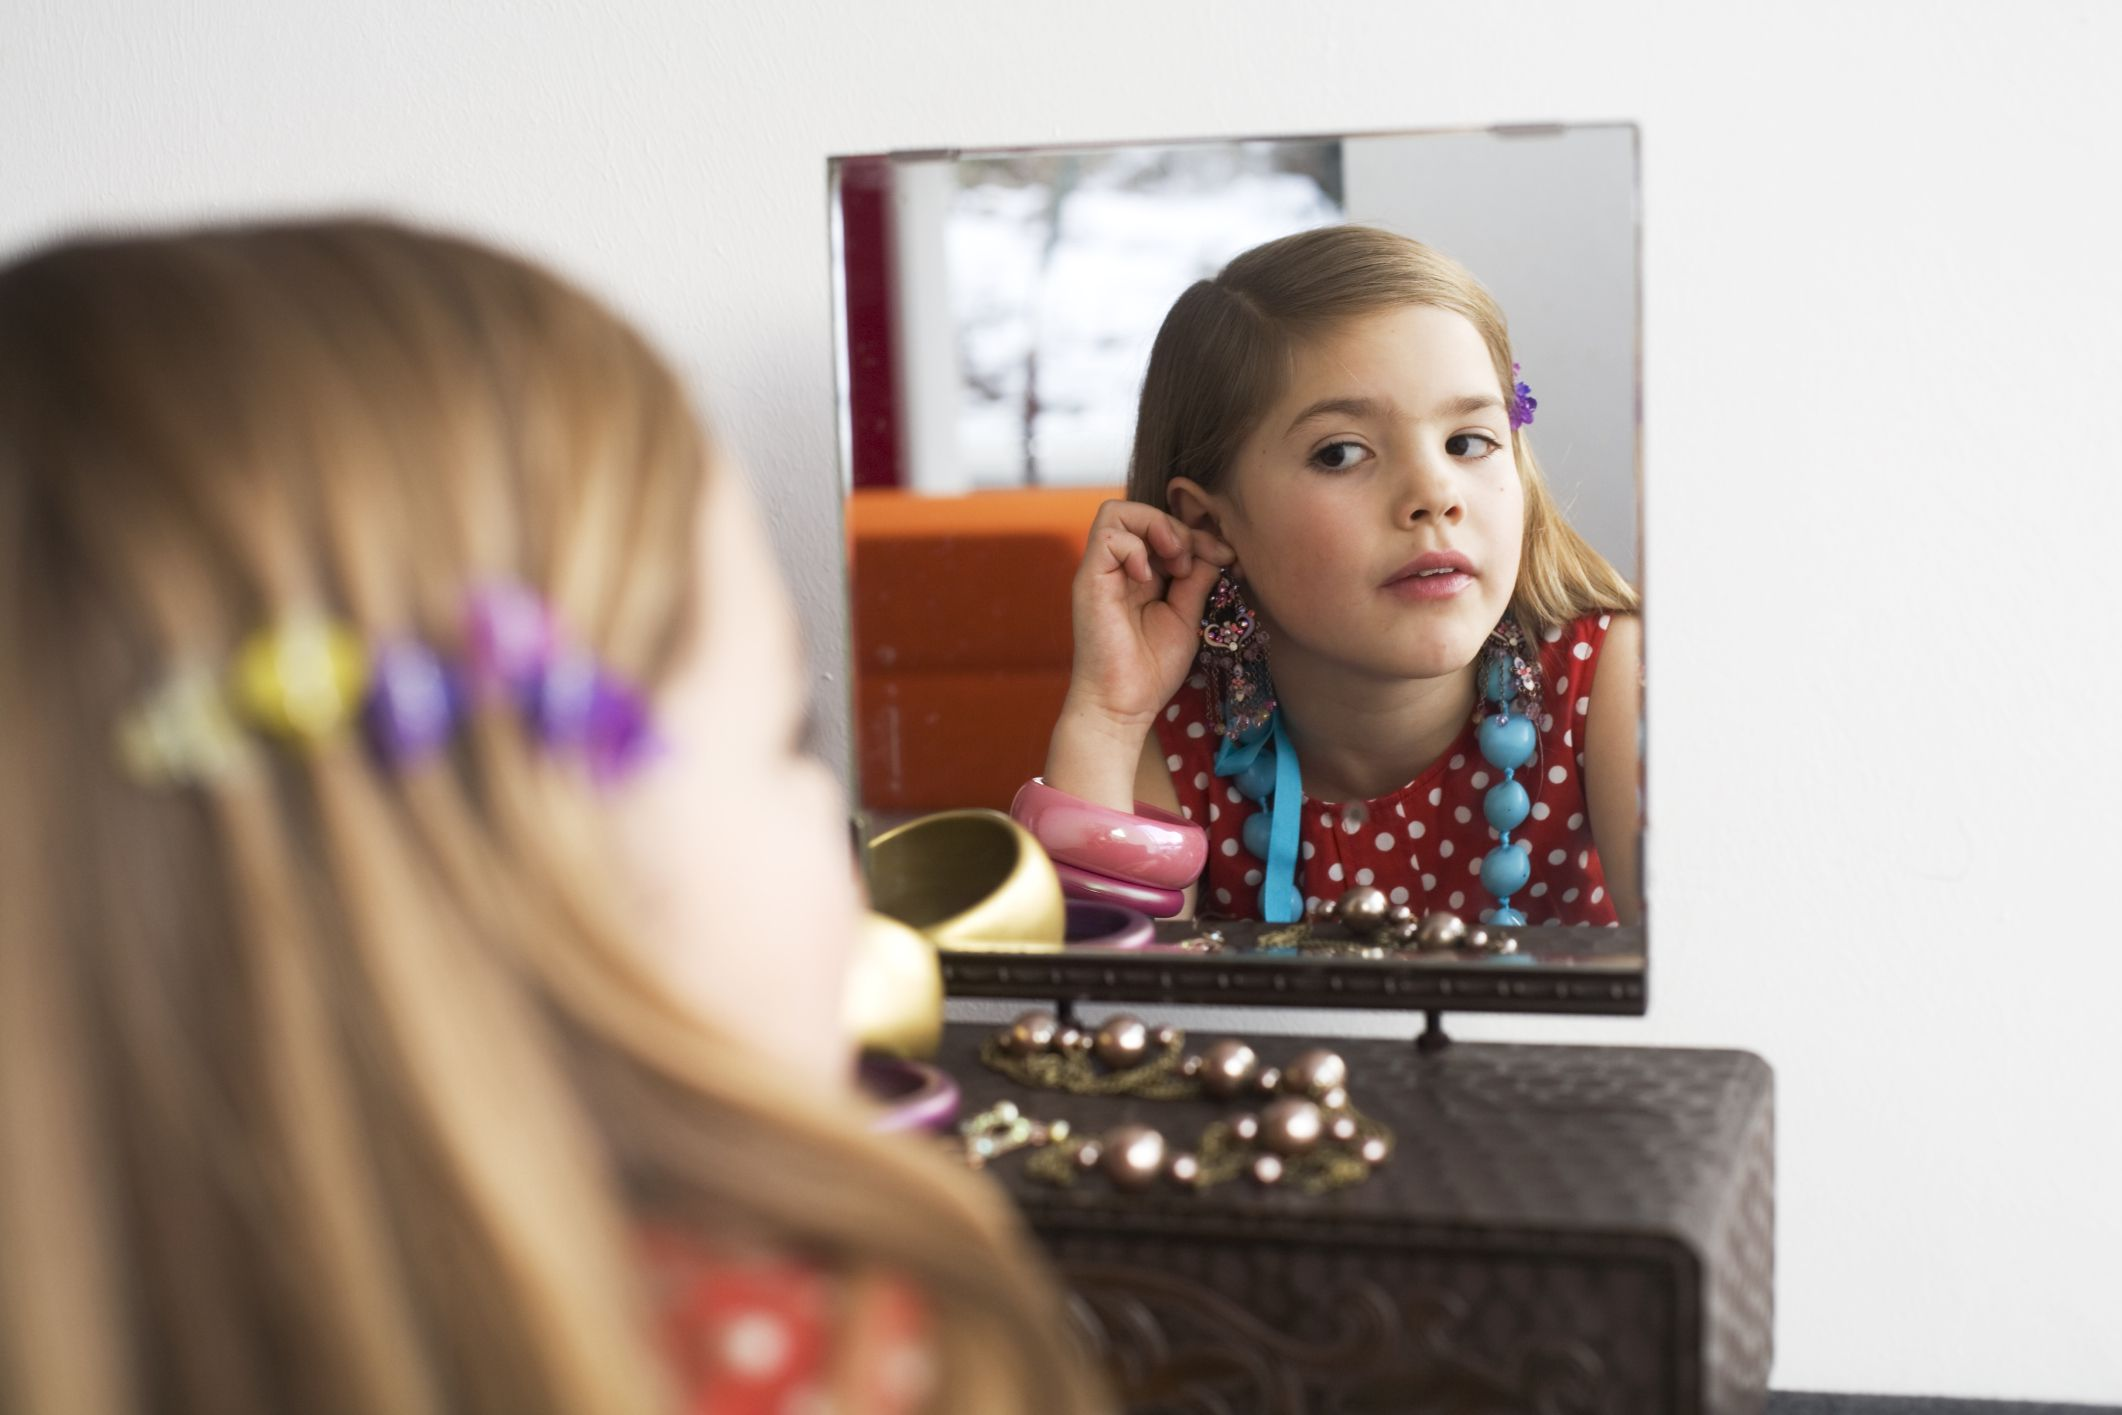 puberty and the issues of peer pressure among tweens Natural weight gain and other changes caused by puberty peer pressure to look a and body dissatisfaction among young adolescent girls having body image issues.